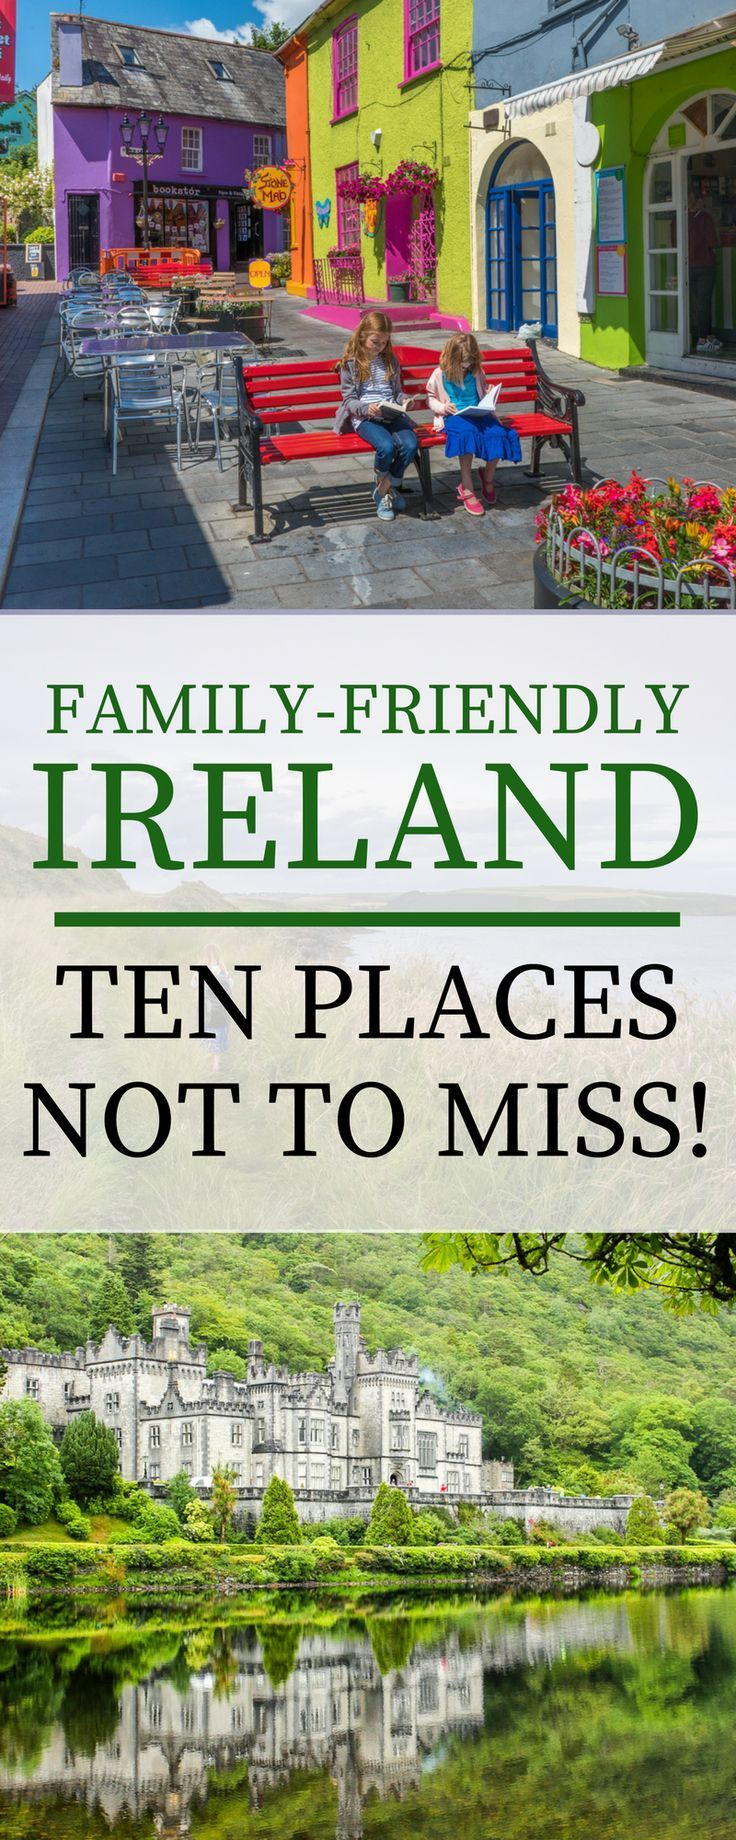 Ireland is extremely kid-friendly! Here are ten sites, from the Giant's Causeway in the north to Kinsale in the south, to add to your next Irish vacation.